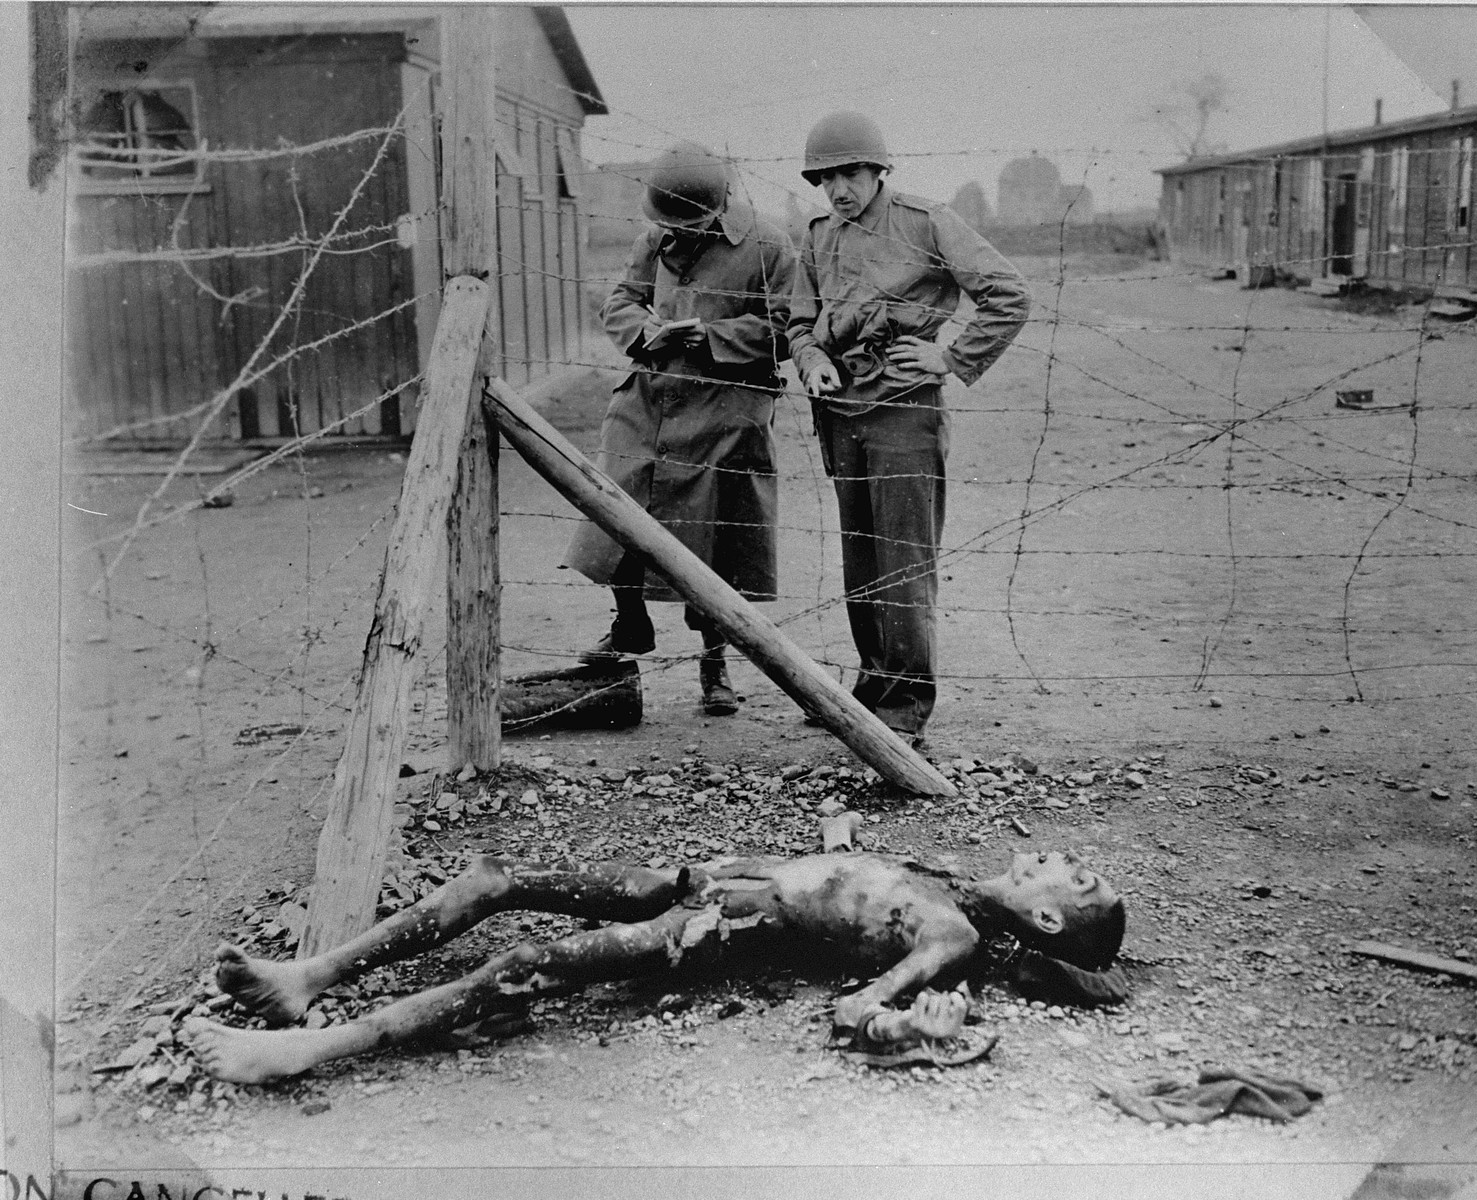 Two American soldiers conducting an investigation of Leipzig-Thekla, a sub-camp of Buchenwald, make notes while examining a corpse lying near a barbed wire fence.